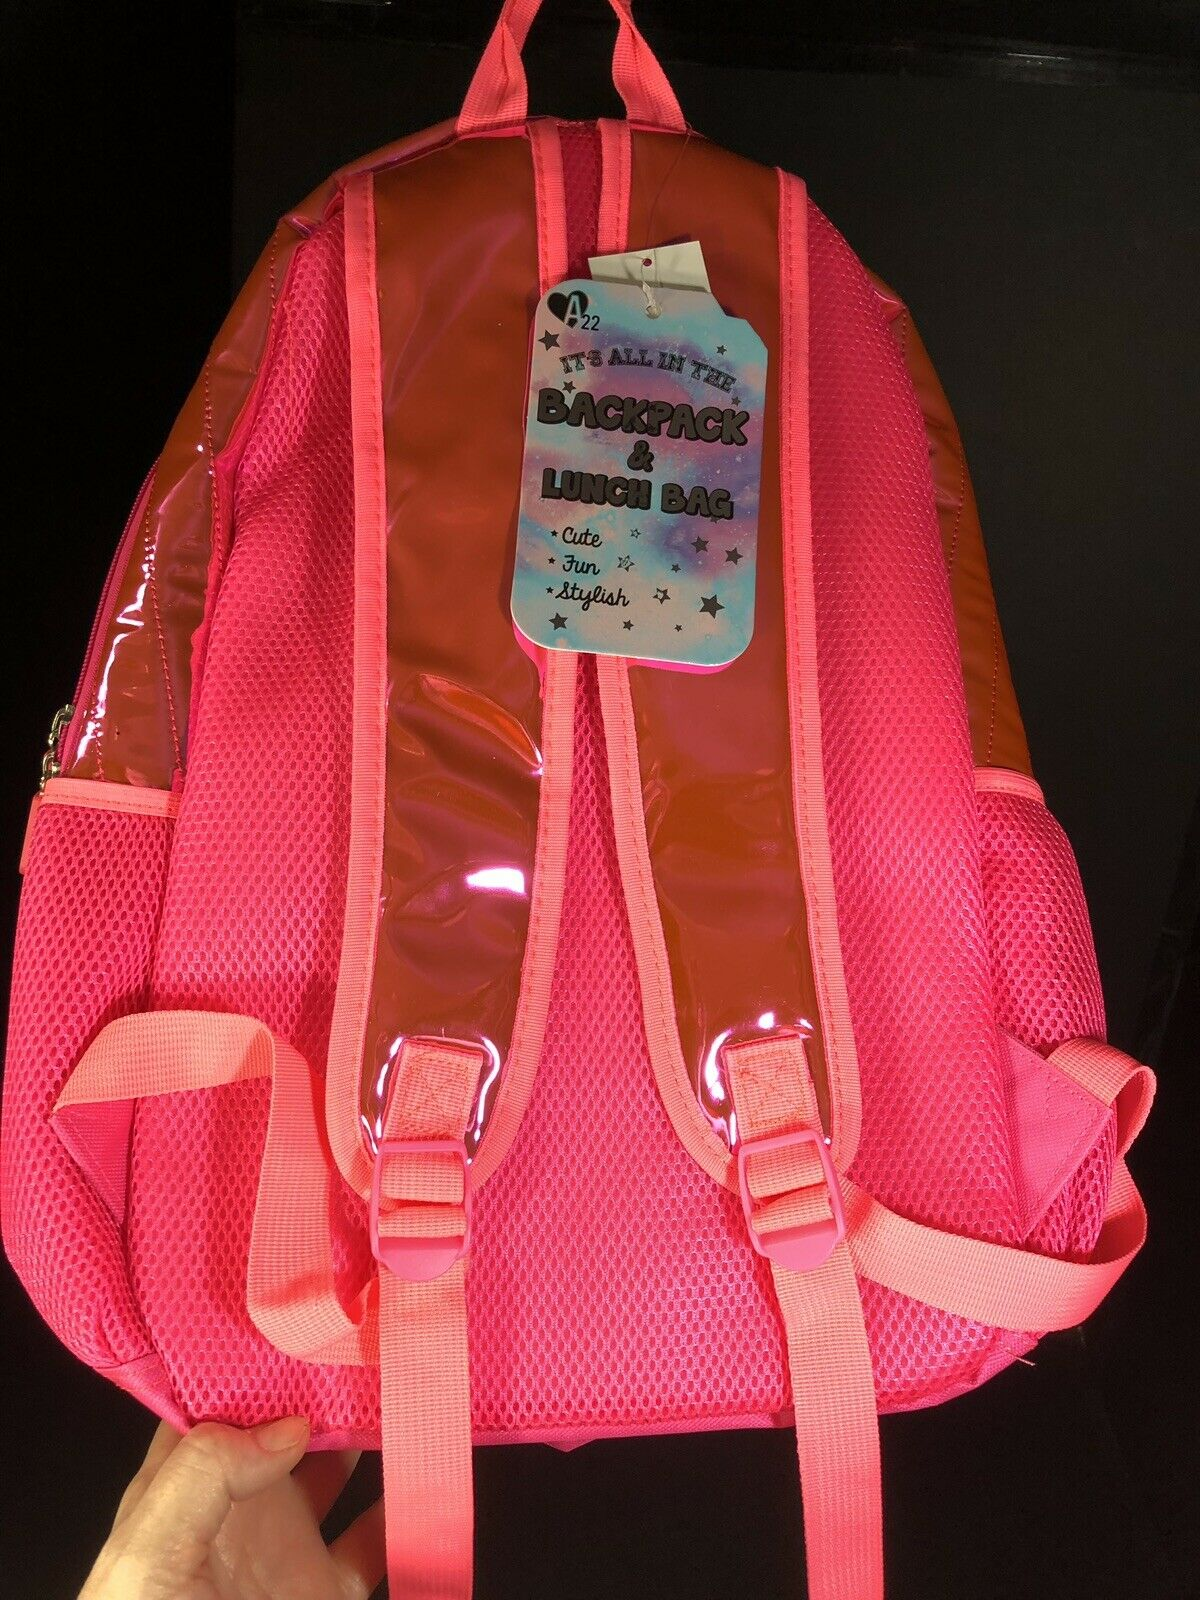 Childrens Girls Backpack 2 PC Set A22 Girl Squad #Strong Color Pink /& Gold NEW